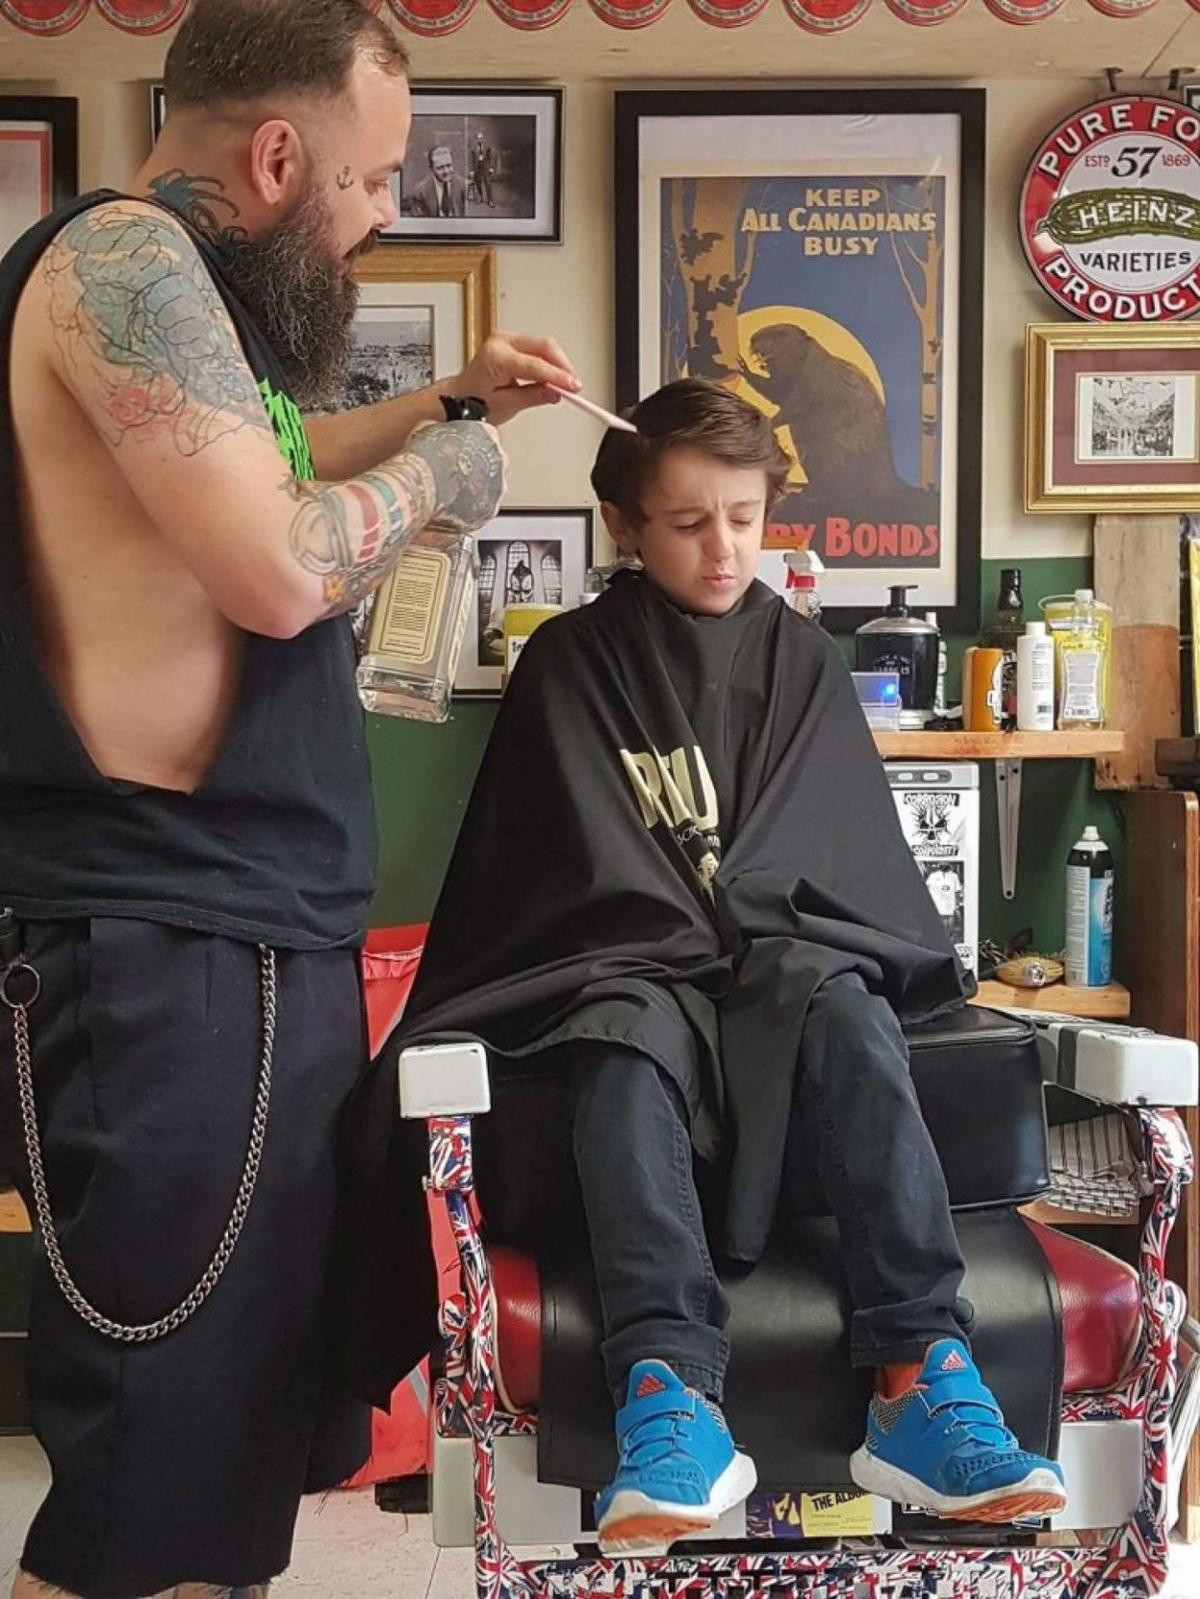 For Children With Autism Haircuts Can Be Traumatic Heres How One